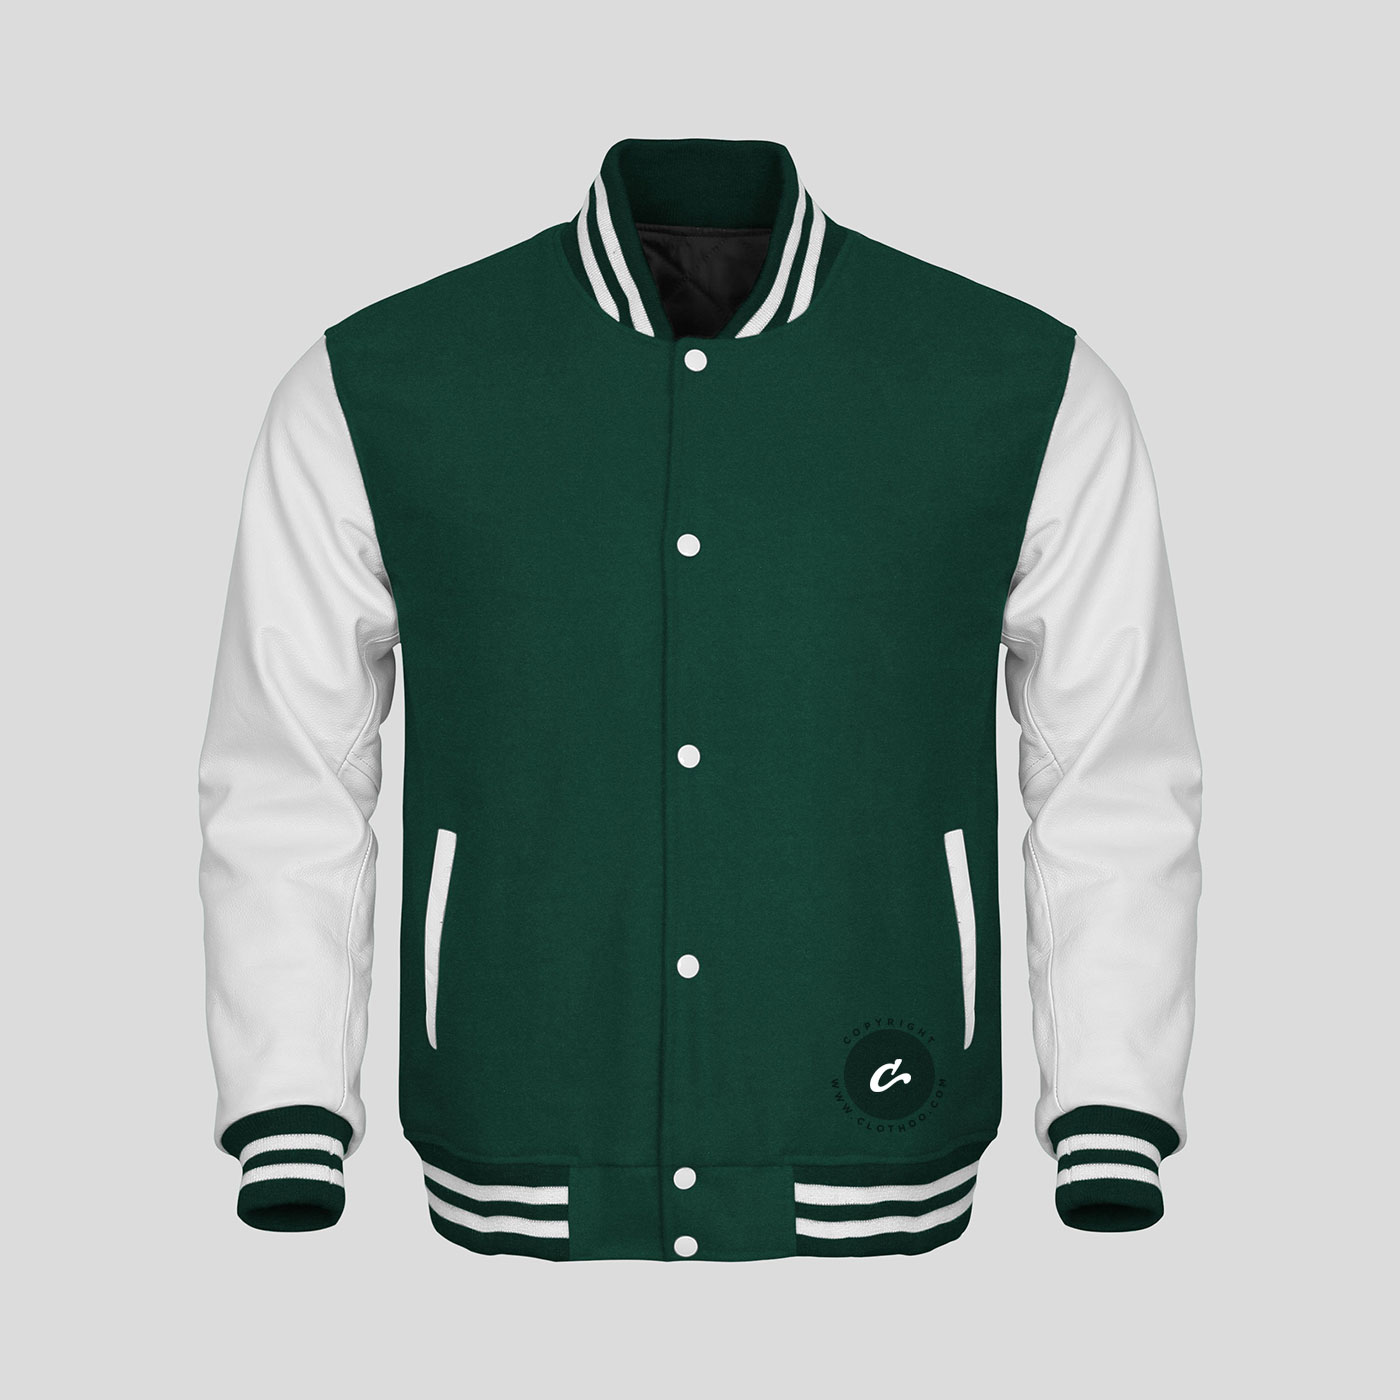 Custom Letterman Jackets Custom Varsity Jackets Clothoo